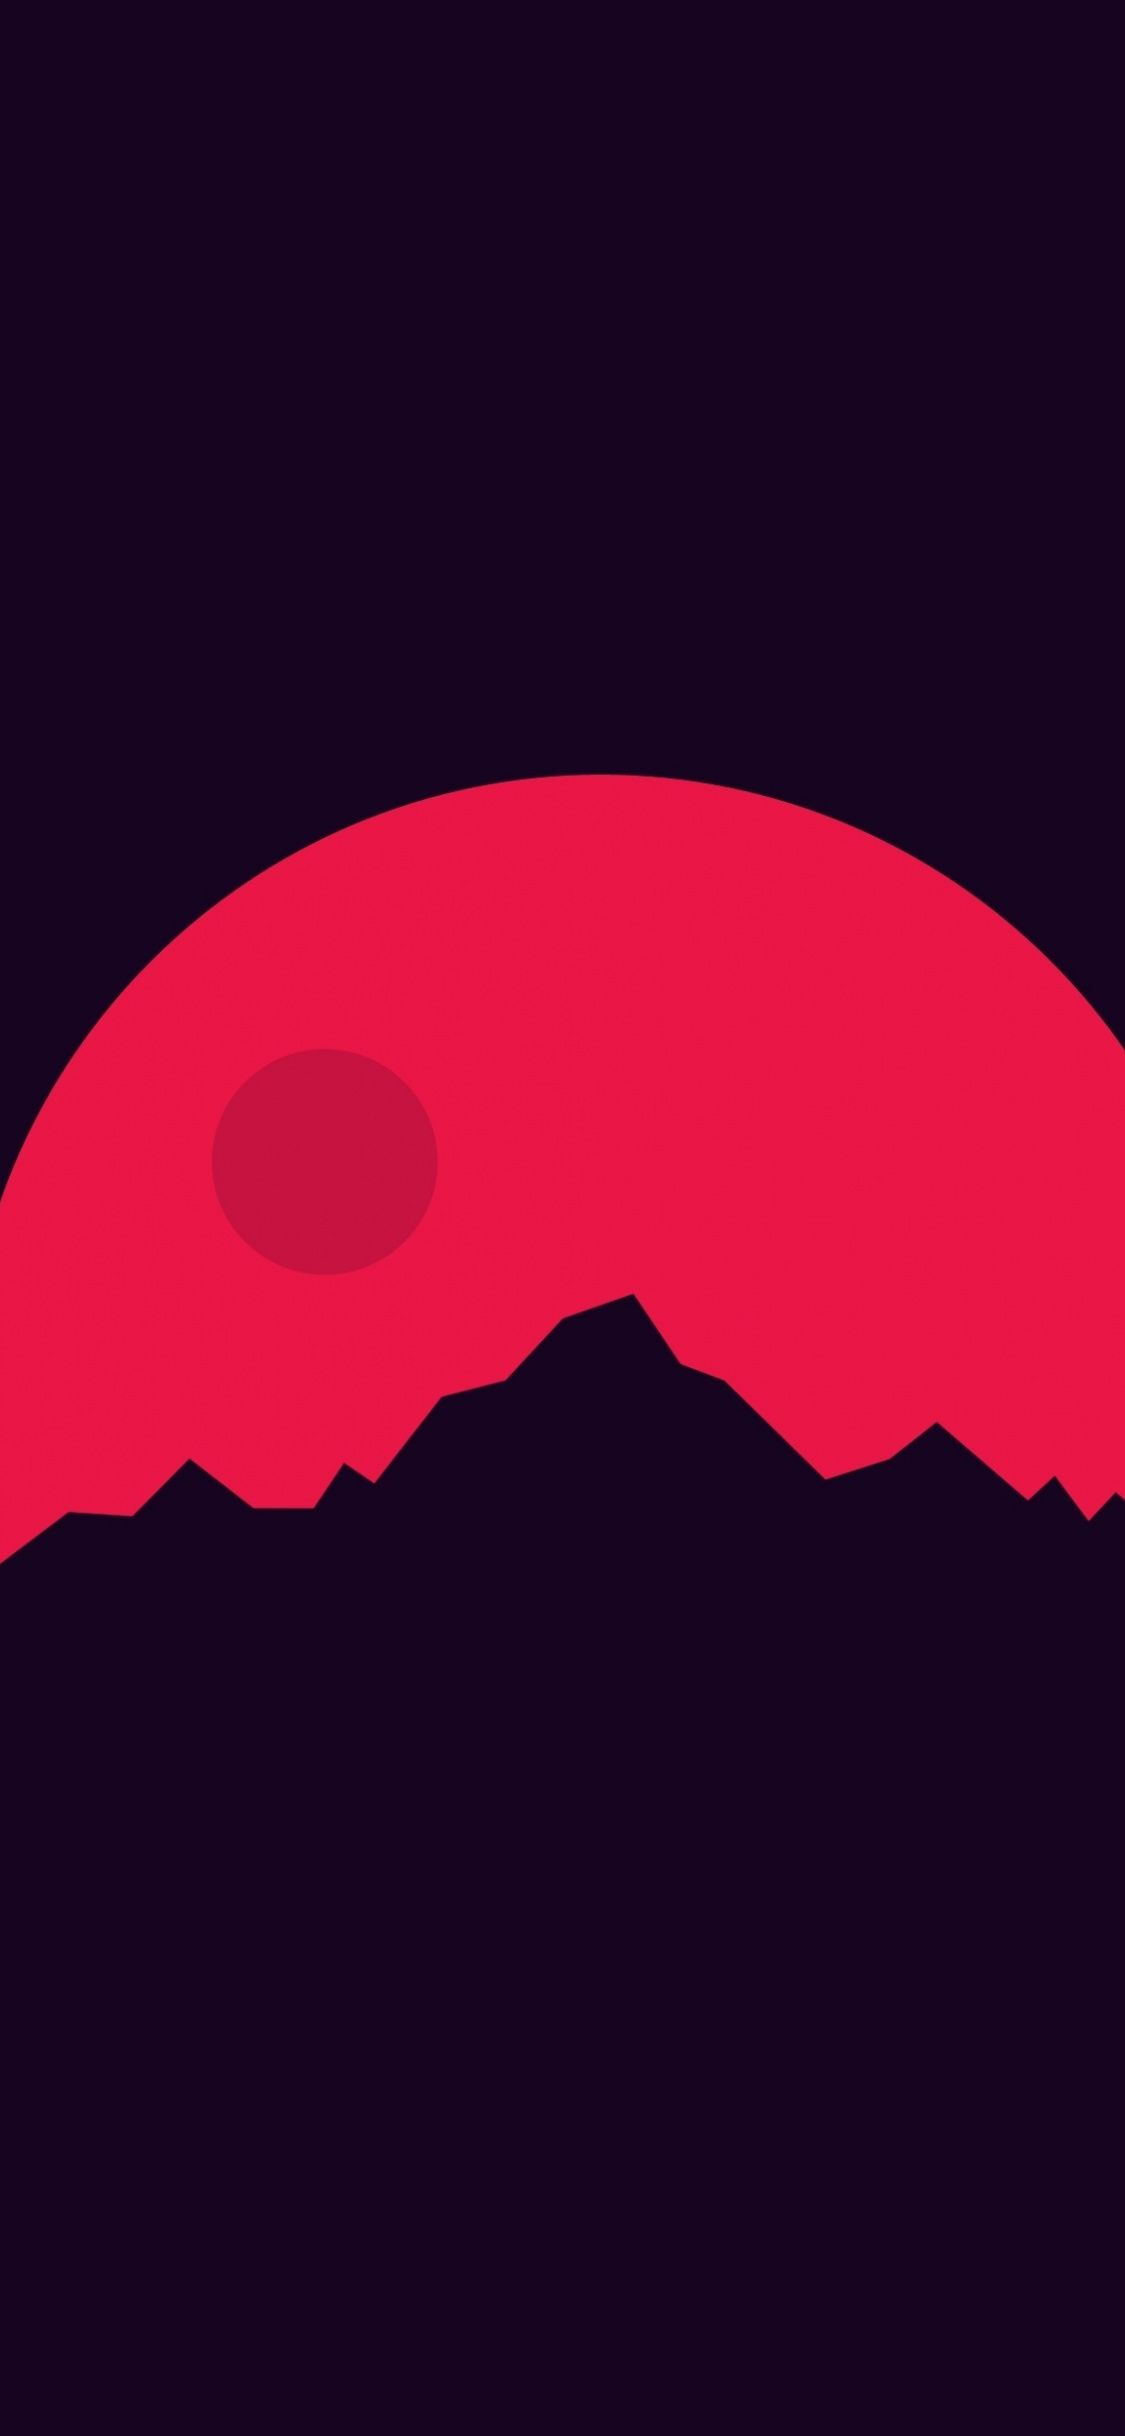 Mountains Mars minimal 1125x2436 wallpaper Ava Art 1125x2436